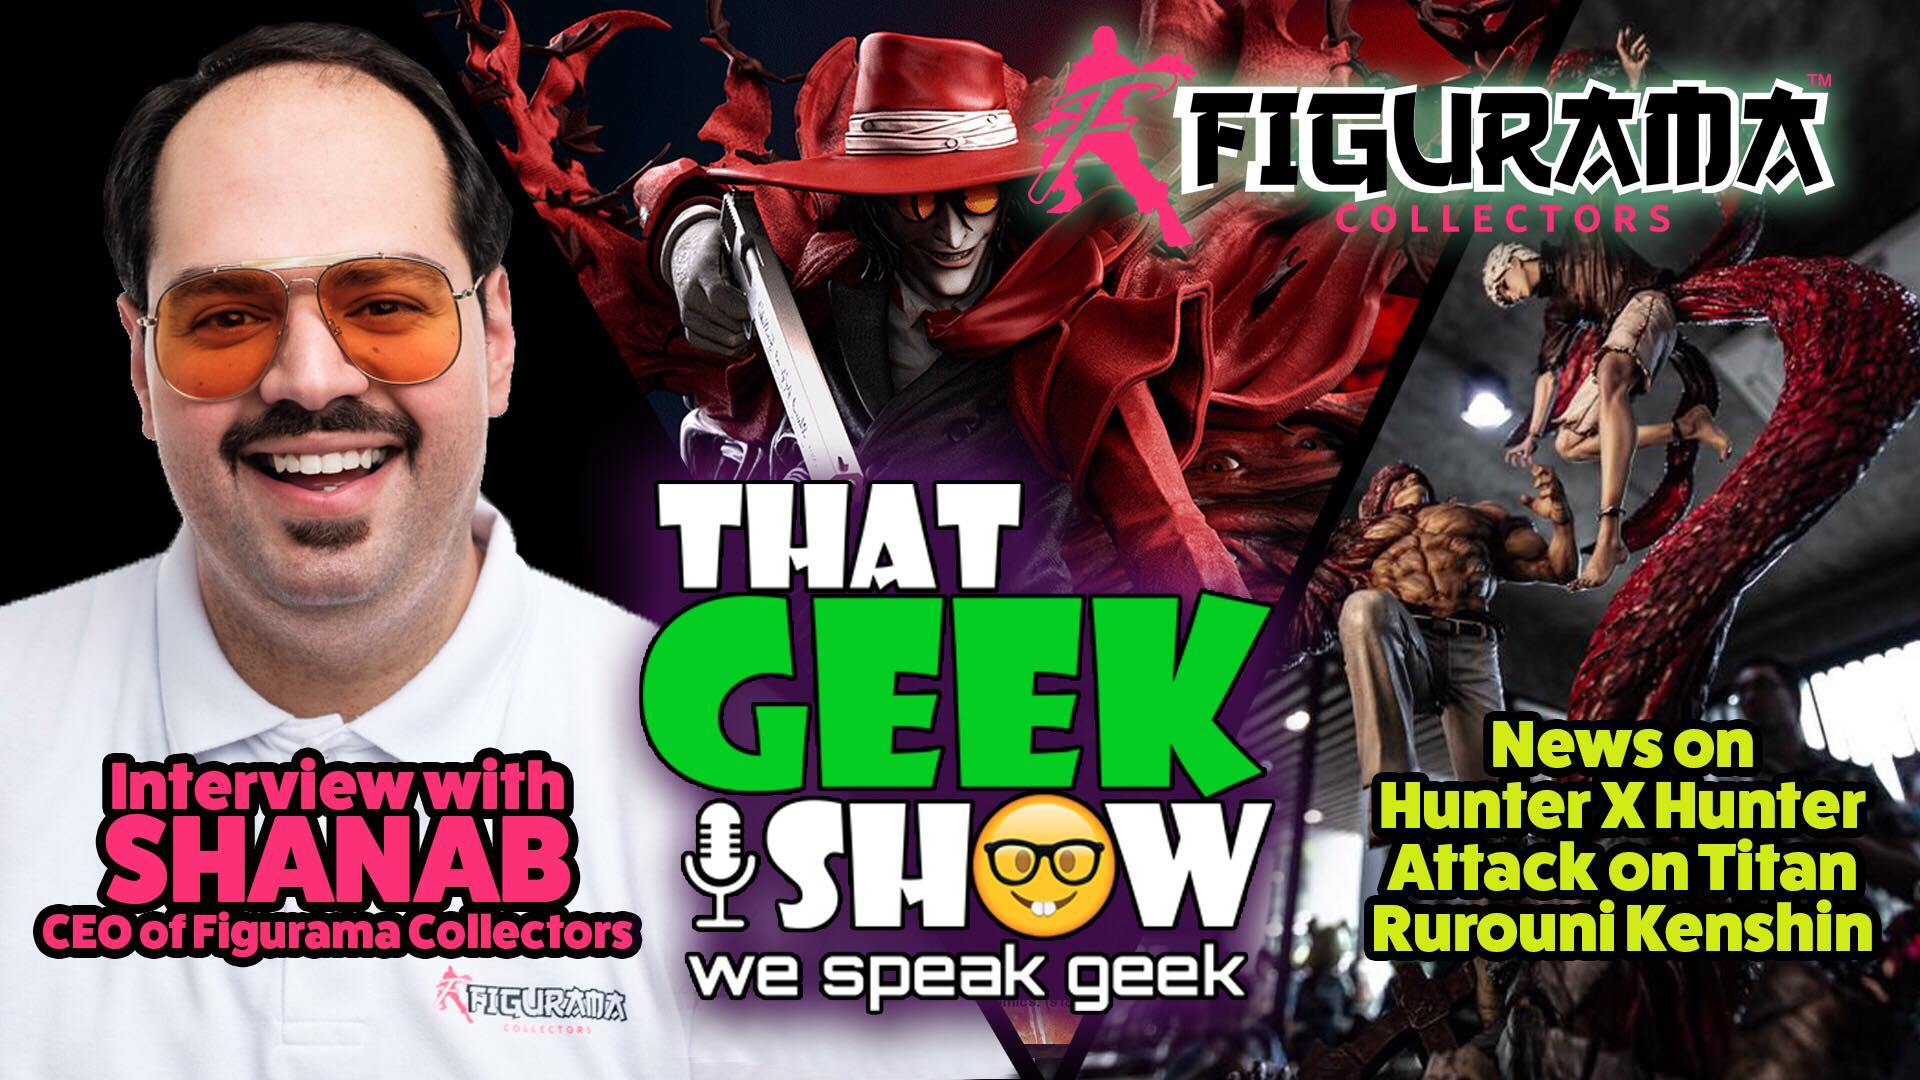 Figurama Collectors CEO Shanab Makes Guest Appearance on That Geek Show